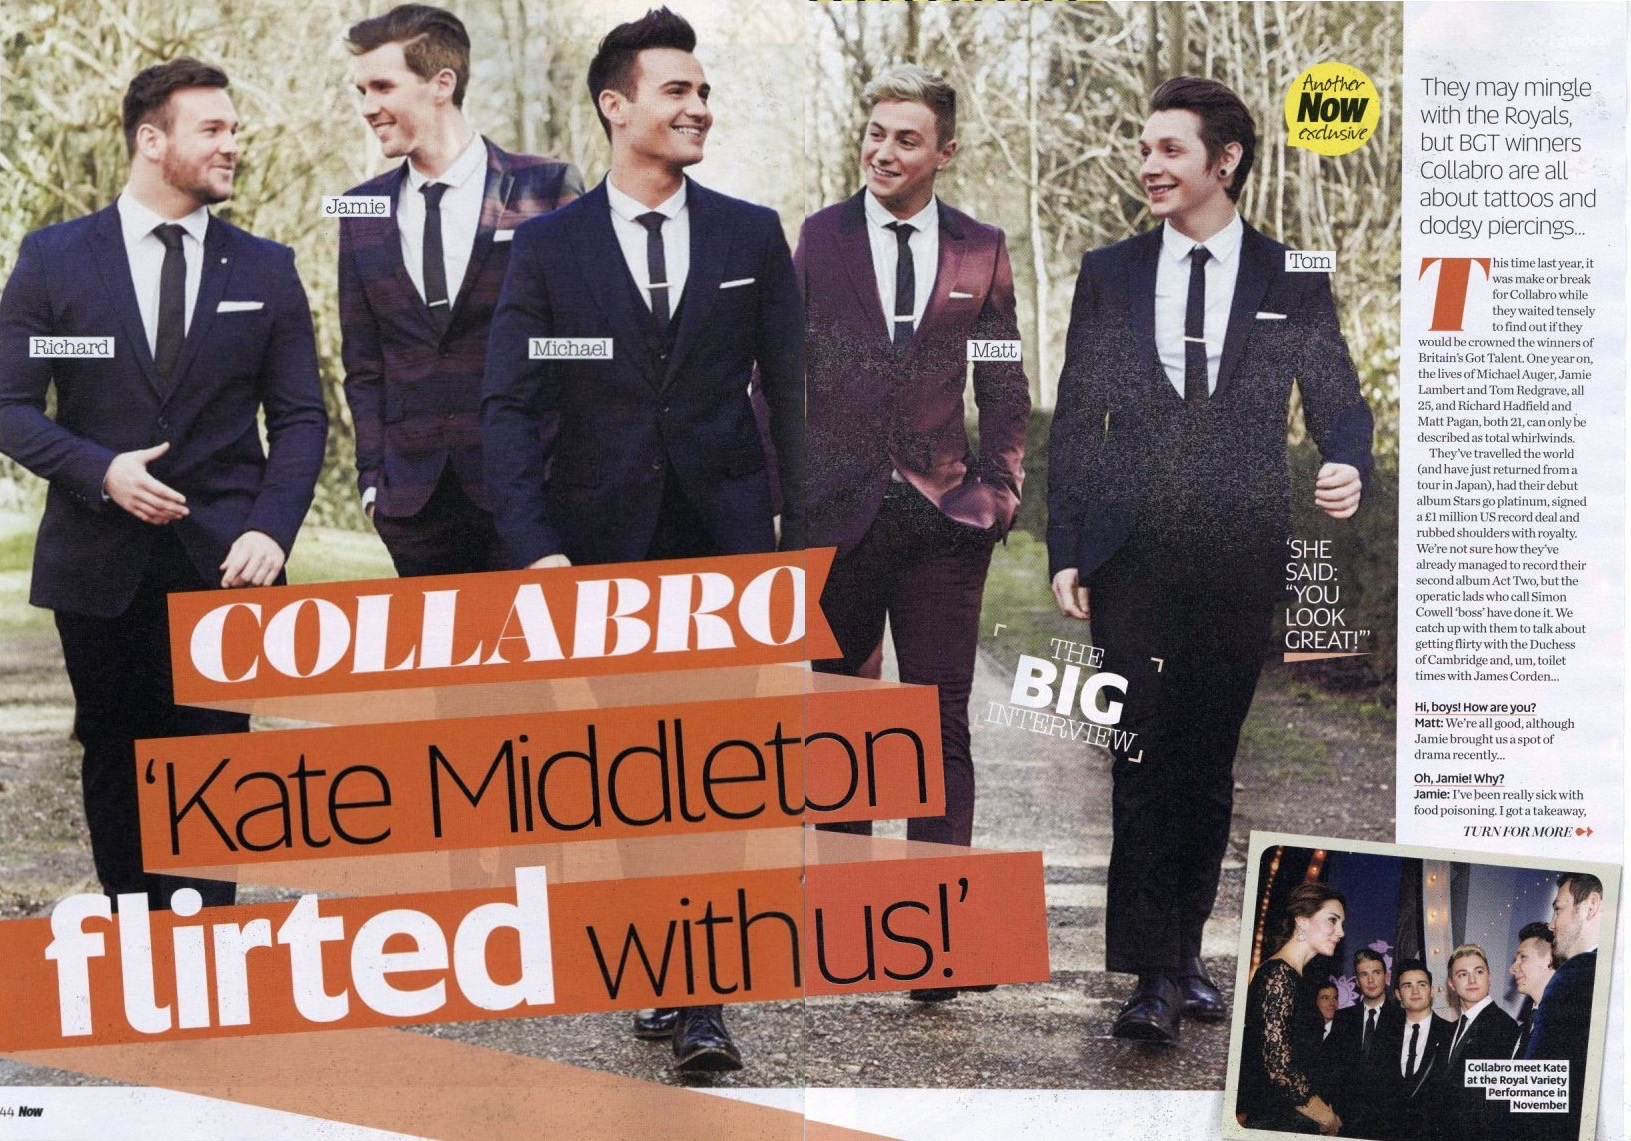 Collabro Album Artwork for Now Mag